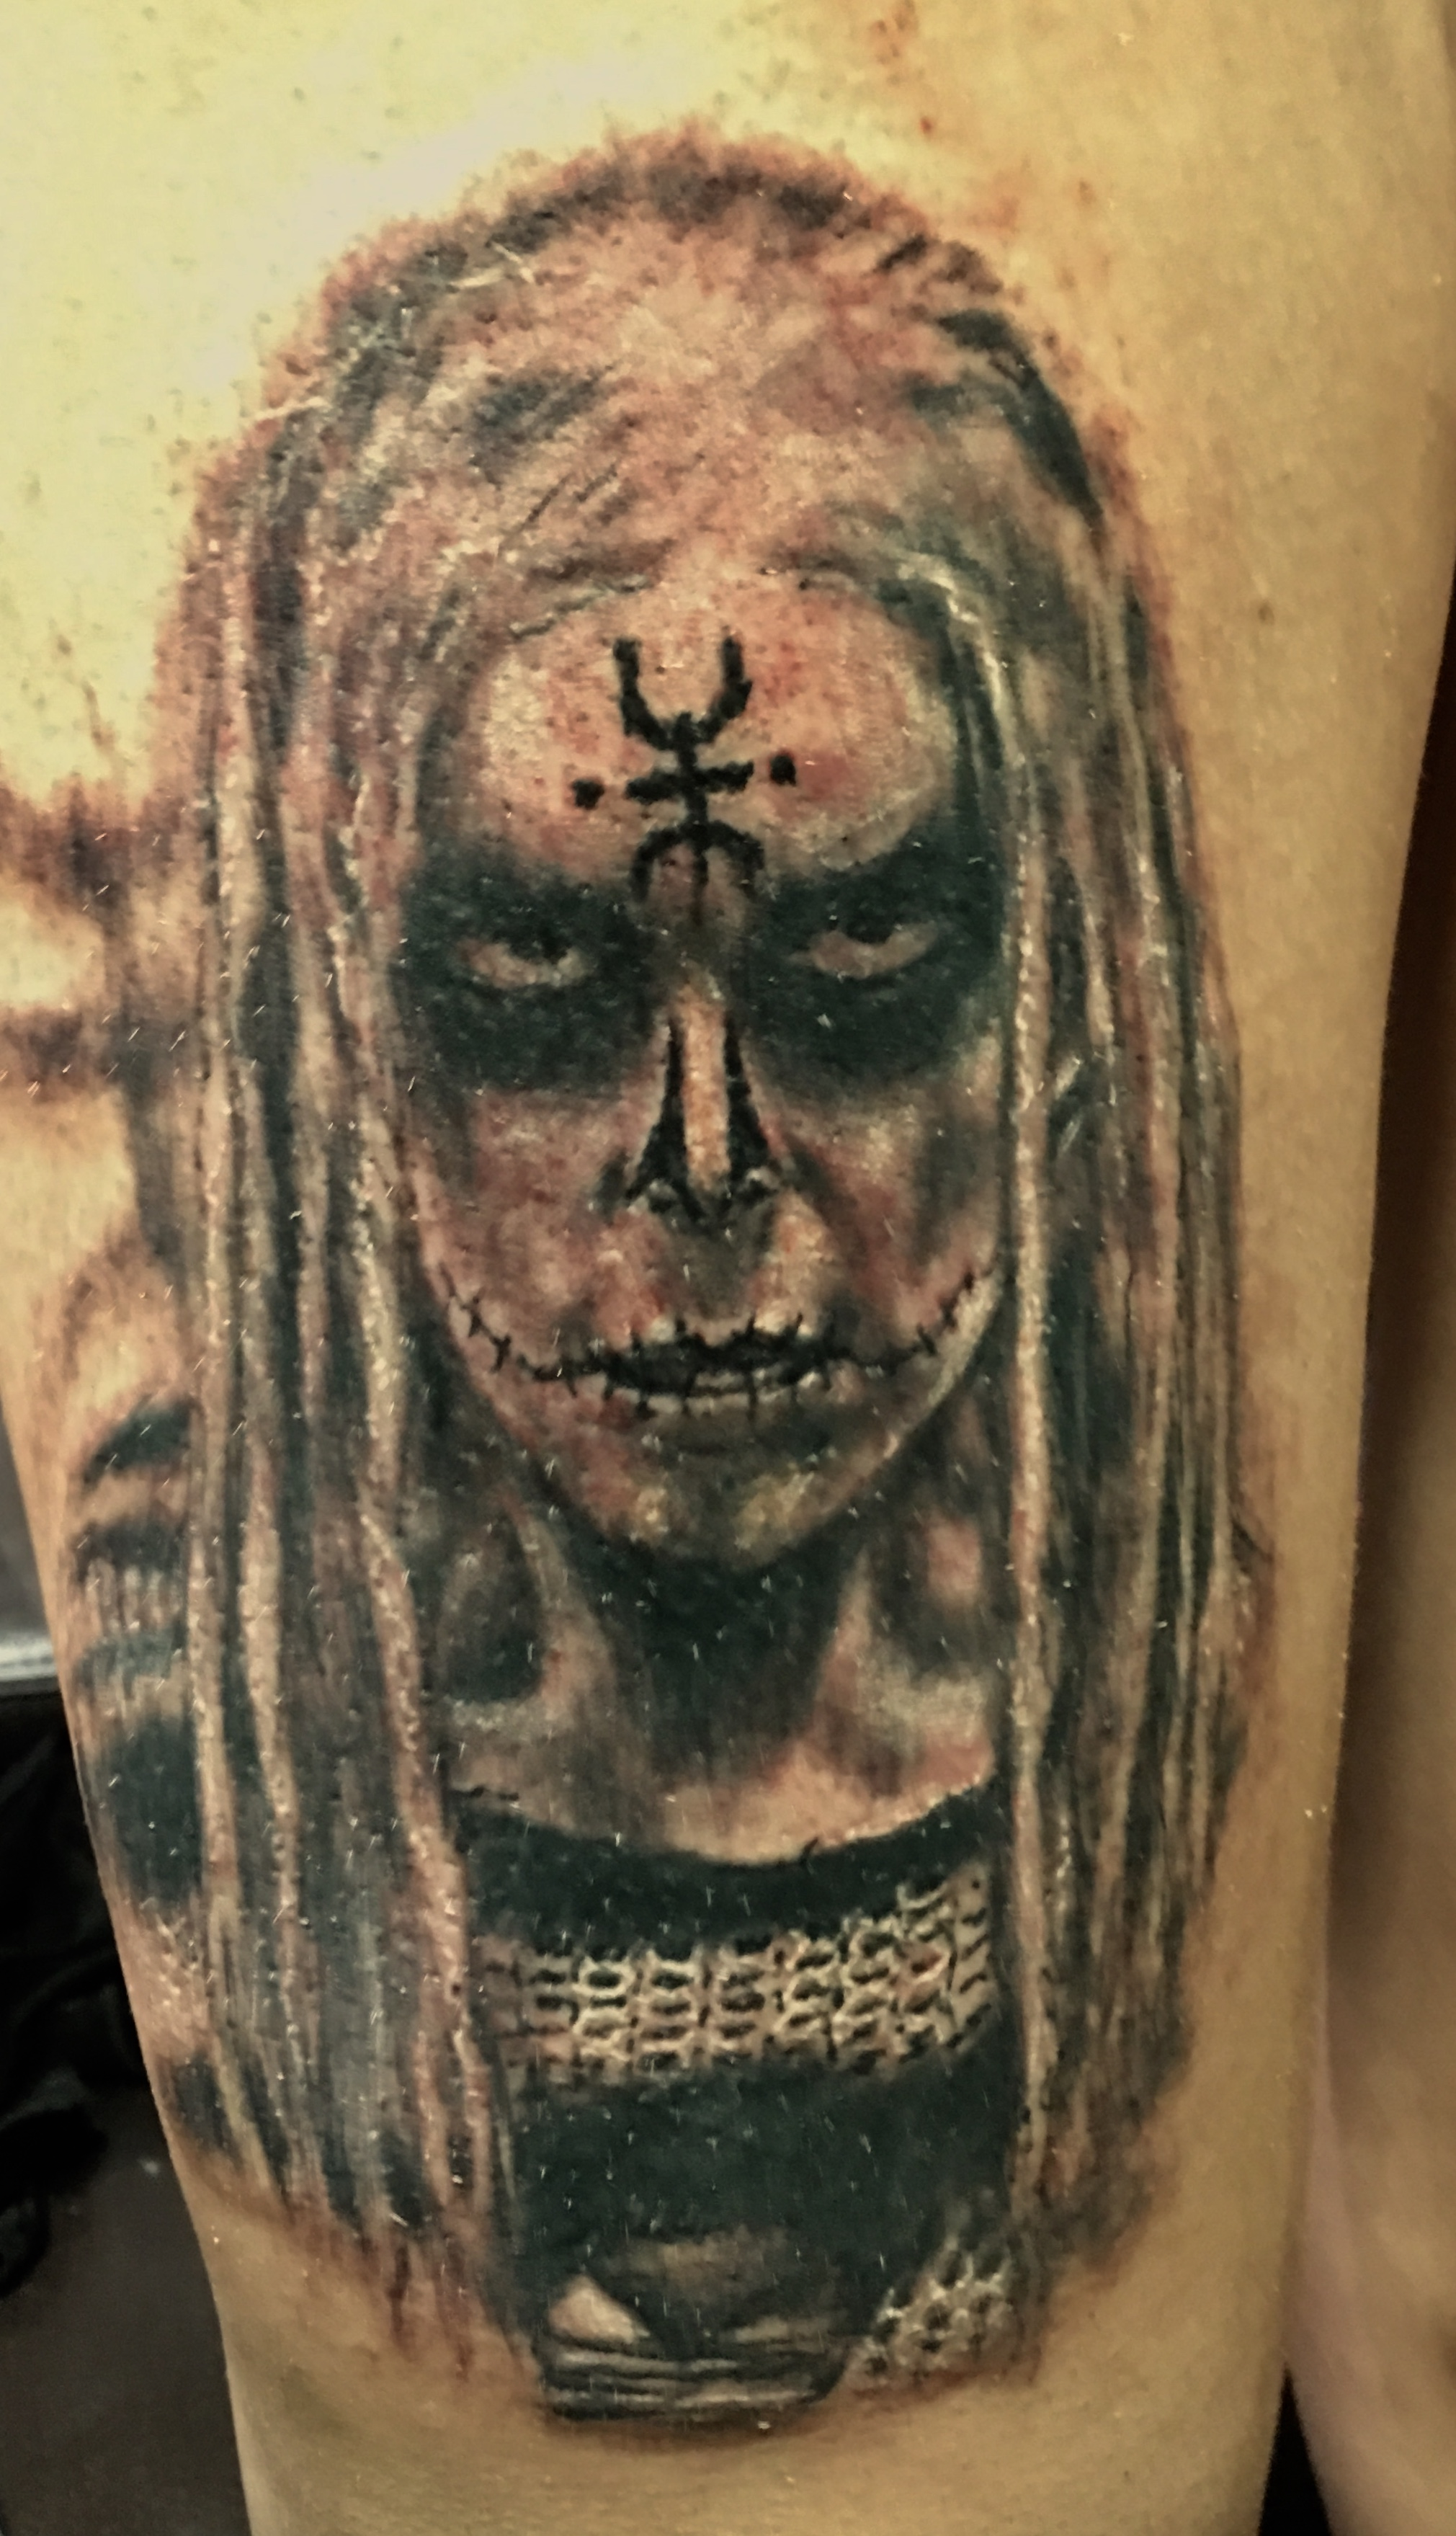 Tattoo of Sherri from Lords